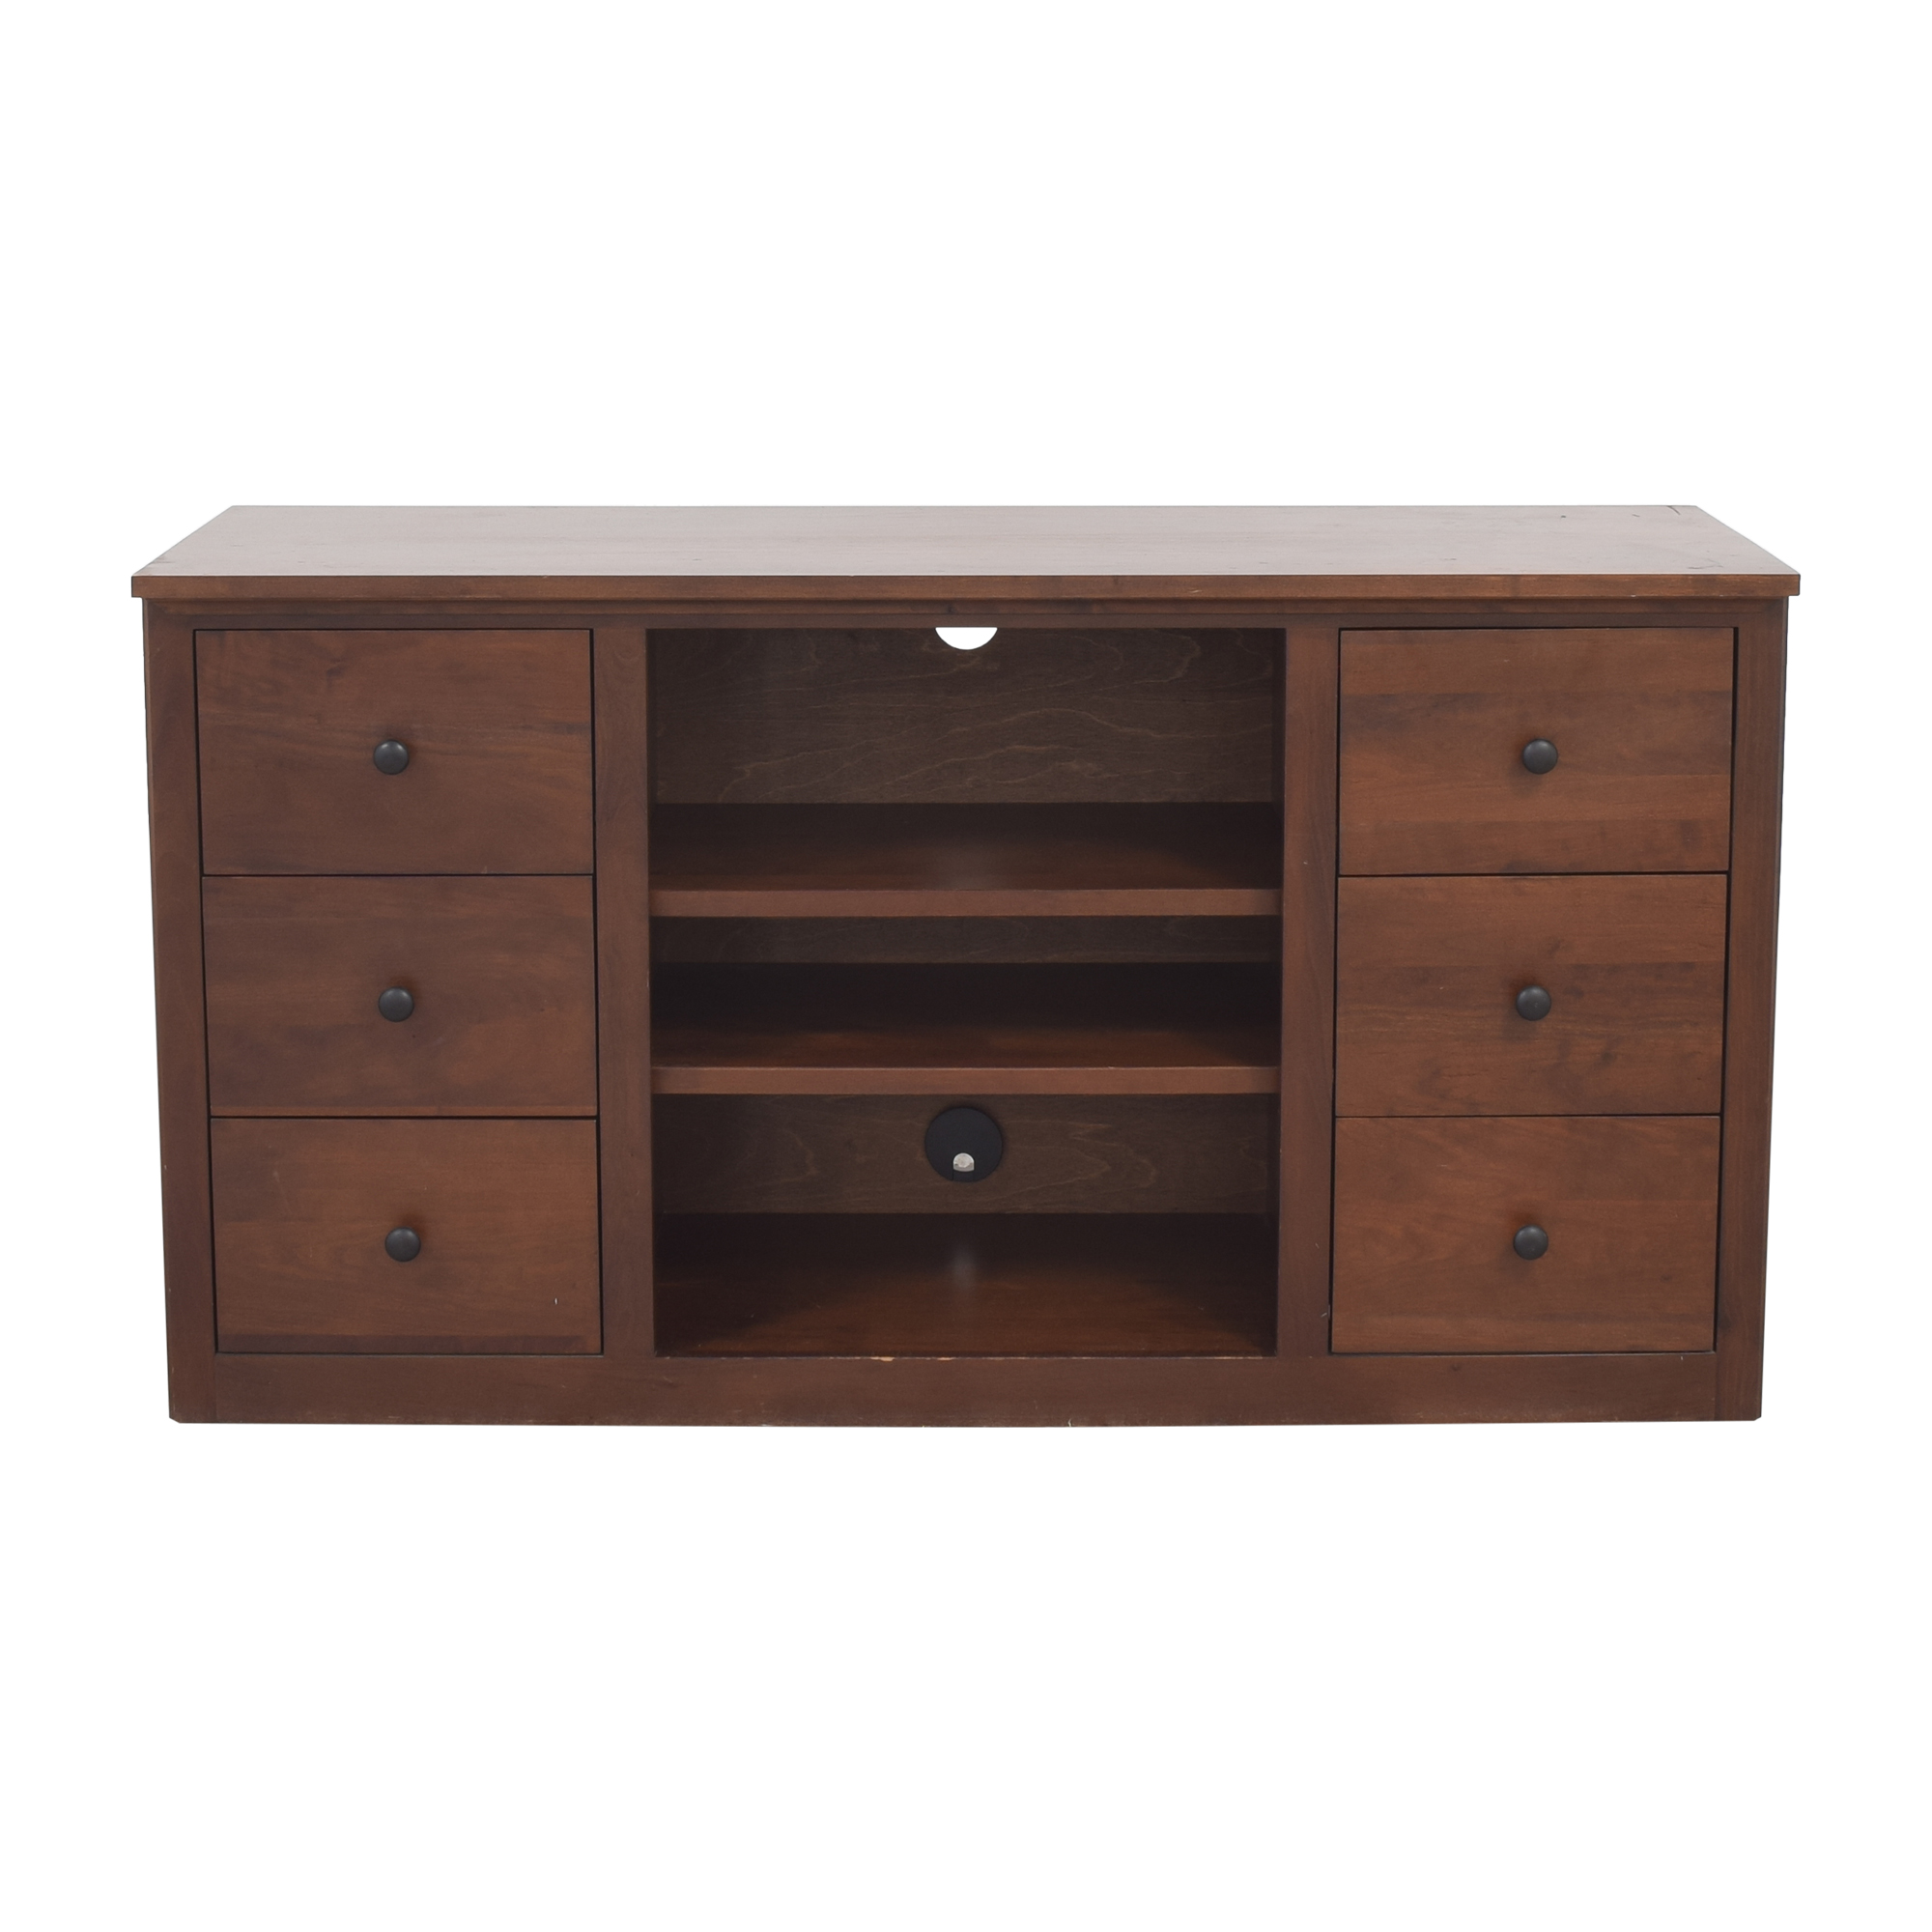 Crate & Barrel Crate & Barrel Media Console Storage